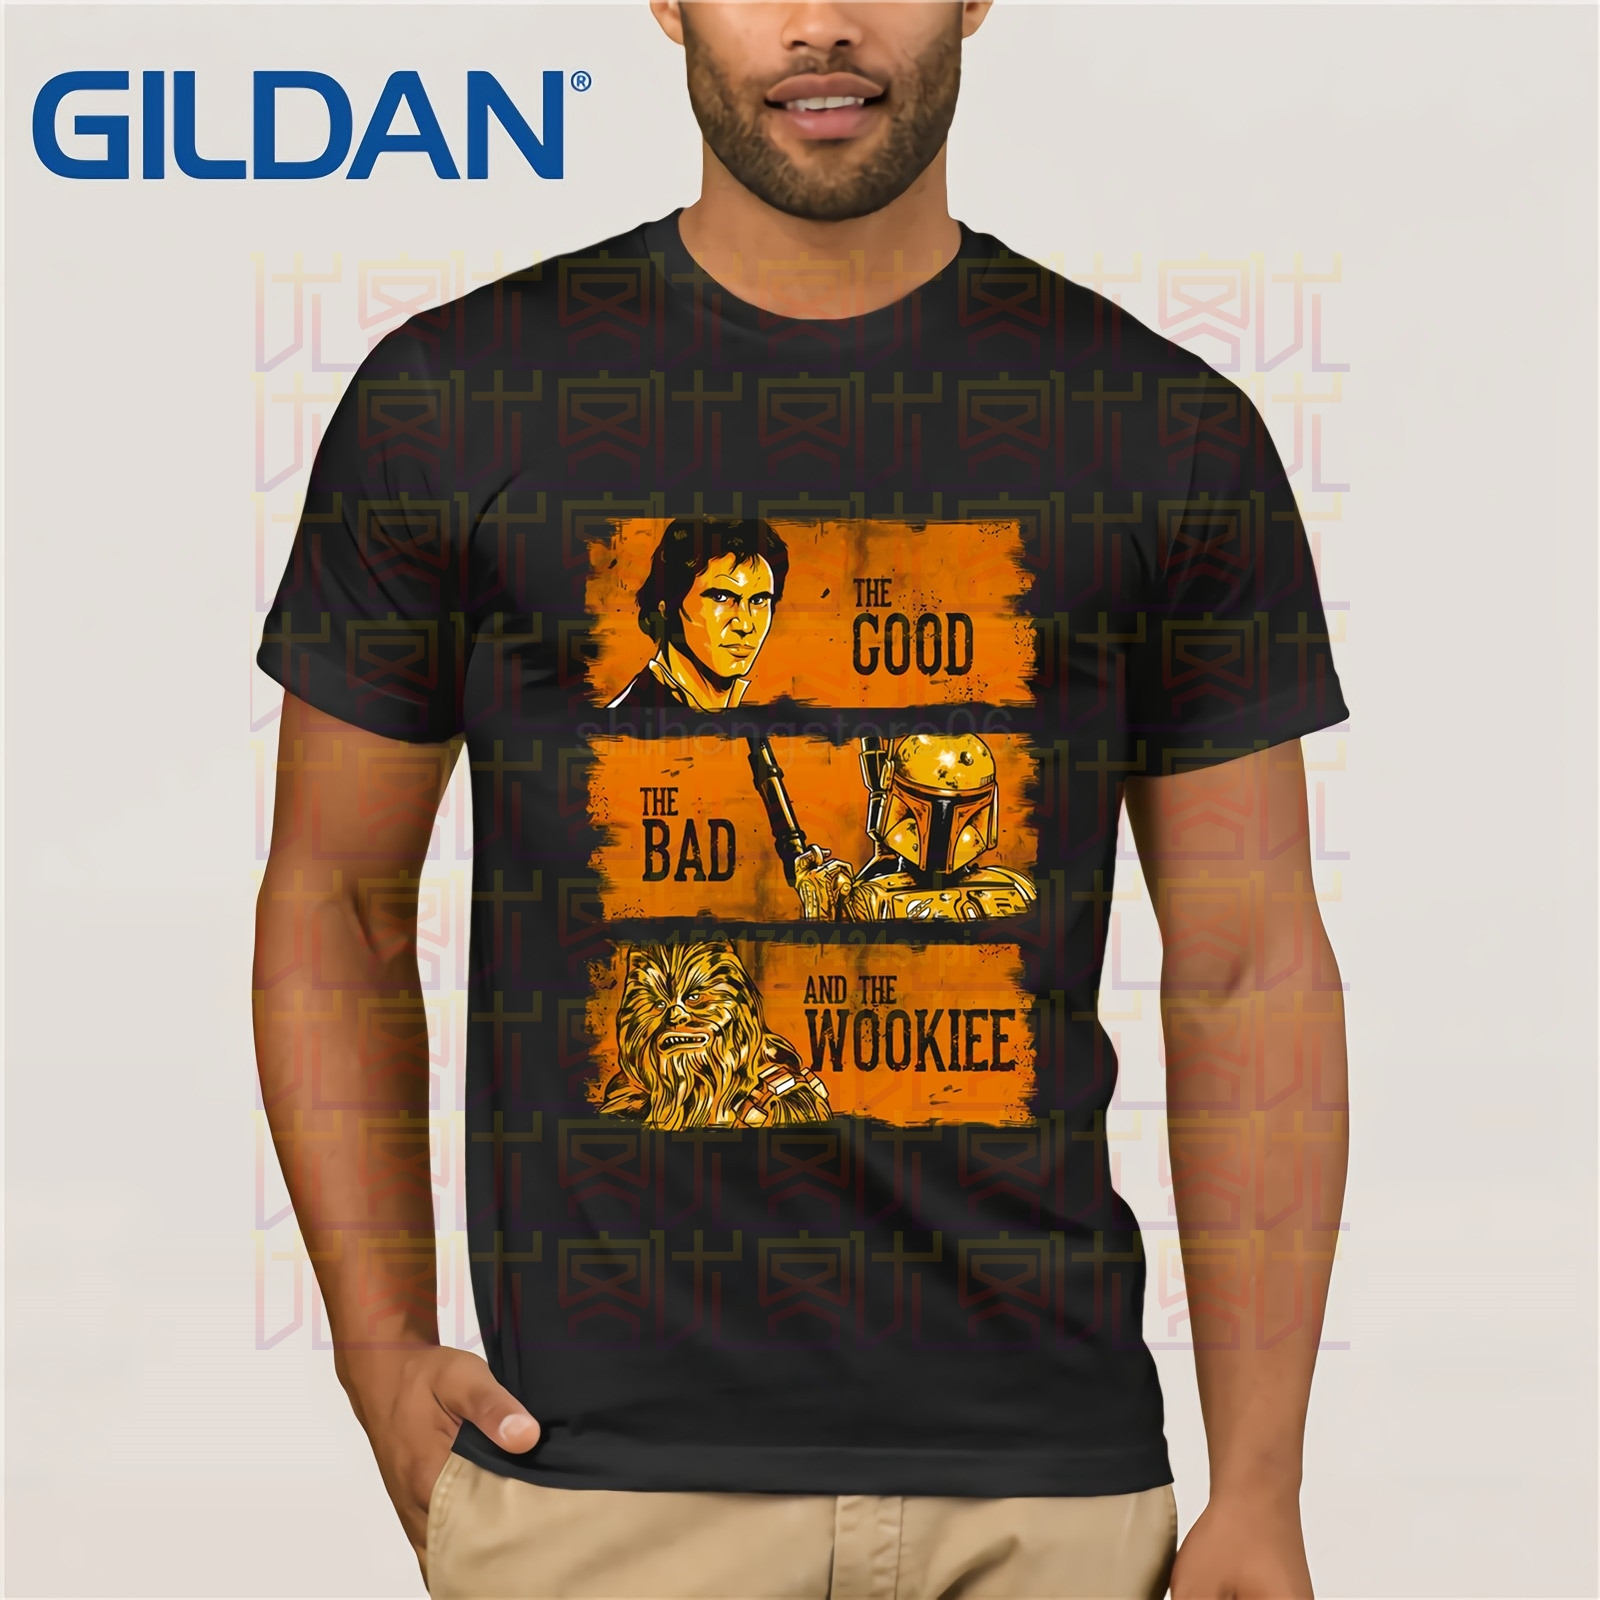 Star Wars T Shirt The Good The Bad And The Ugly Wookiee Han Solo Boba Fett Jedi Fashion  Cotton T-shirt Cartoon